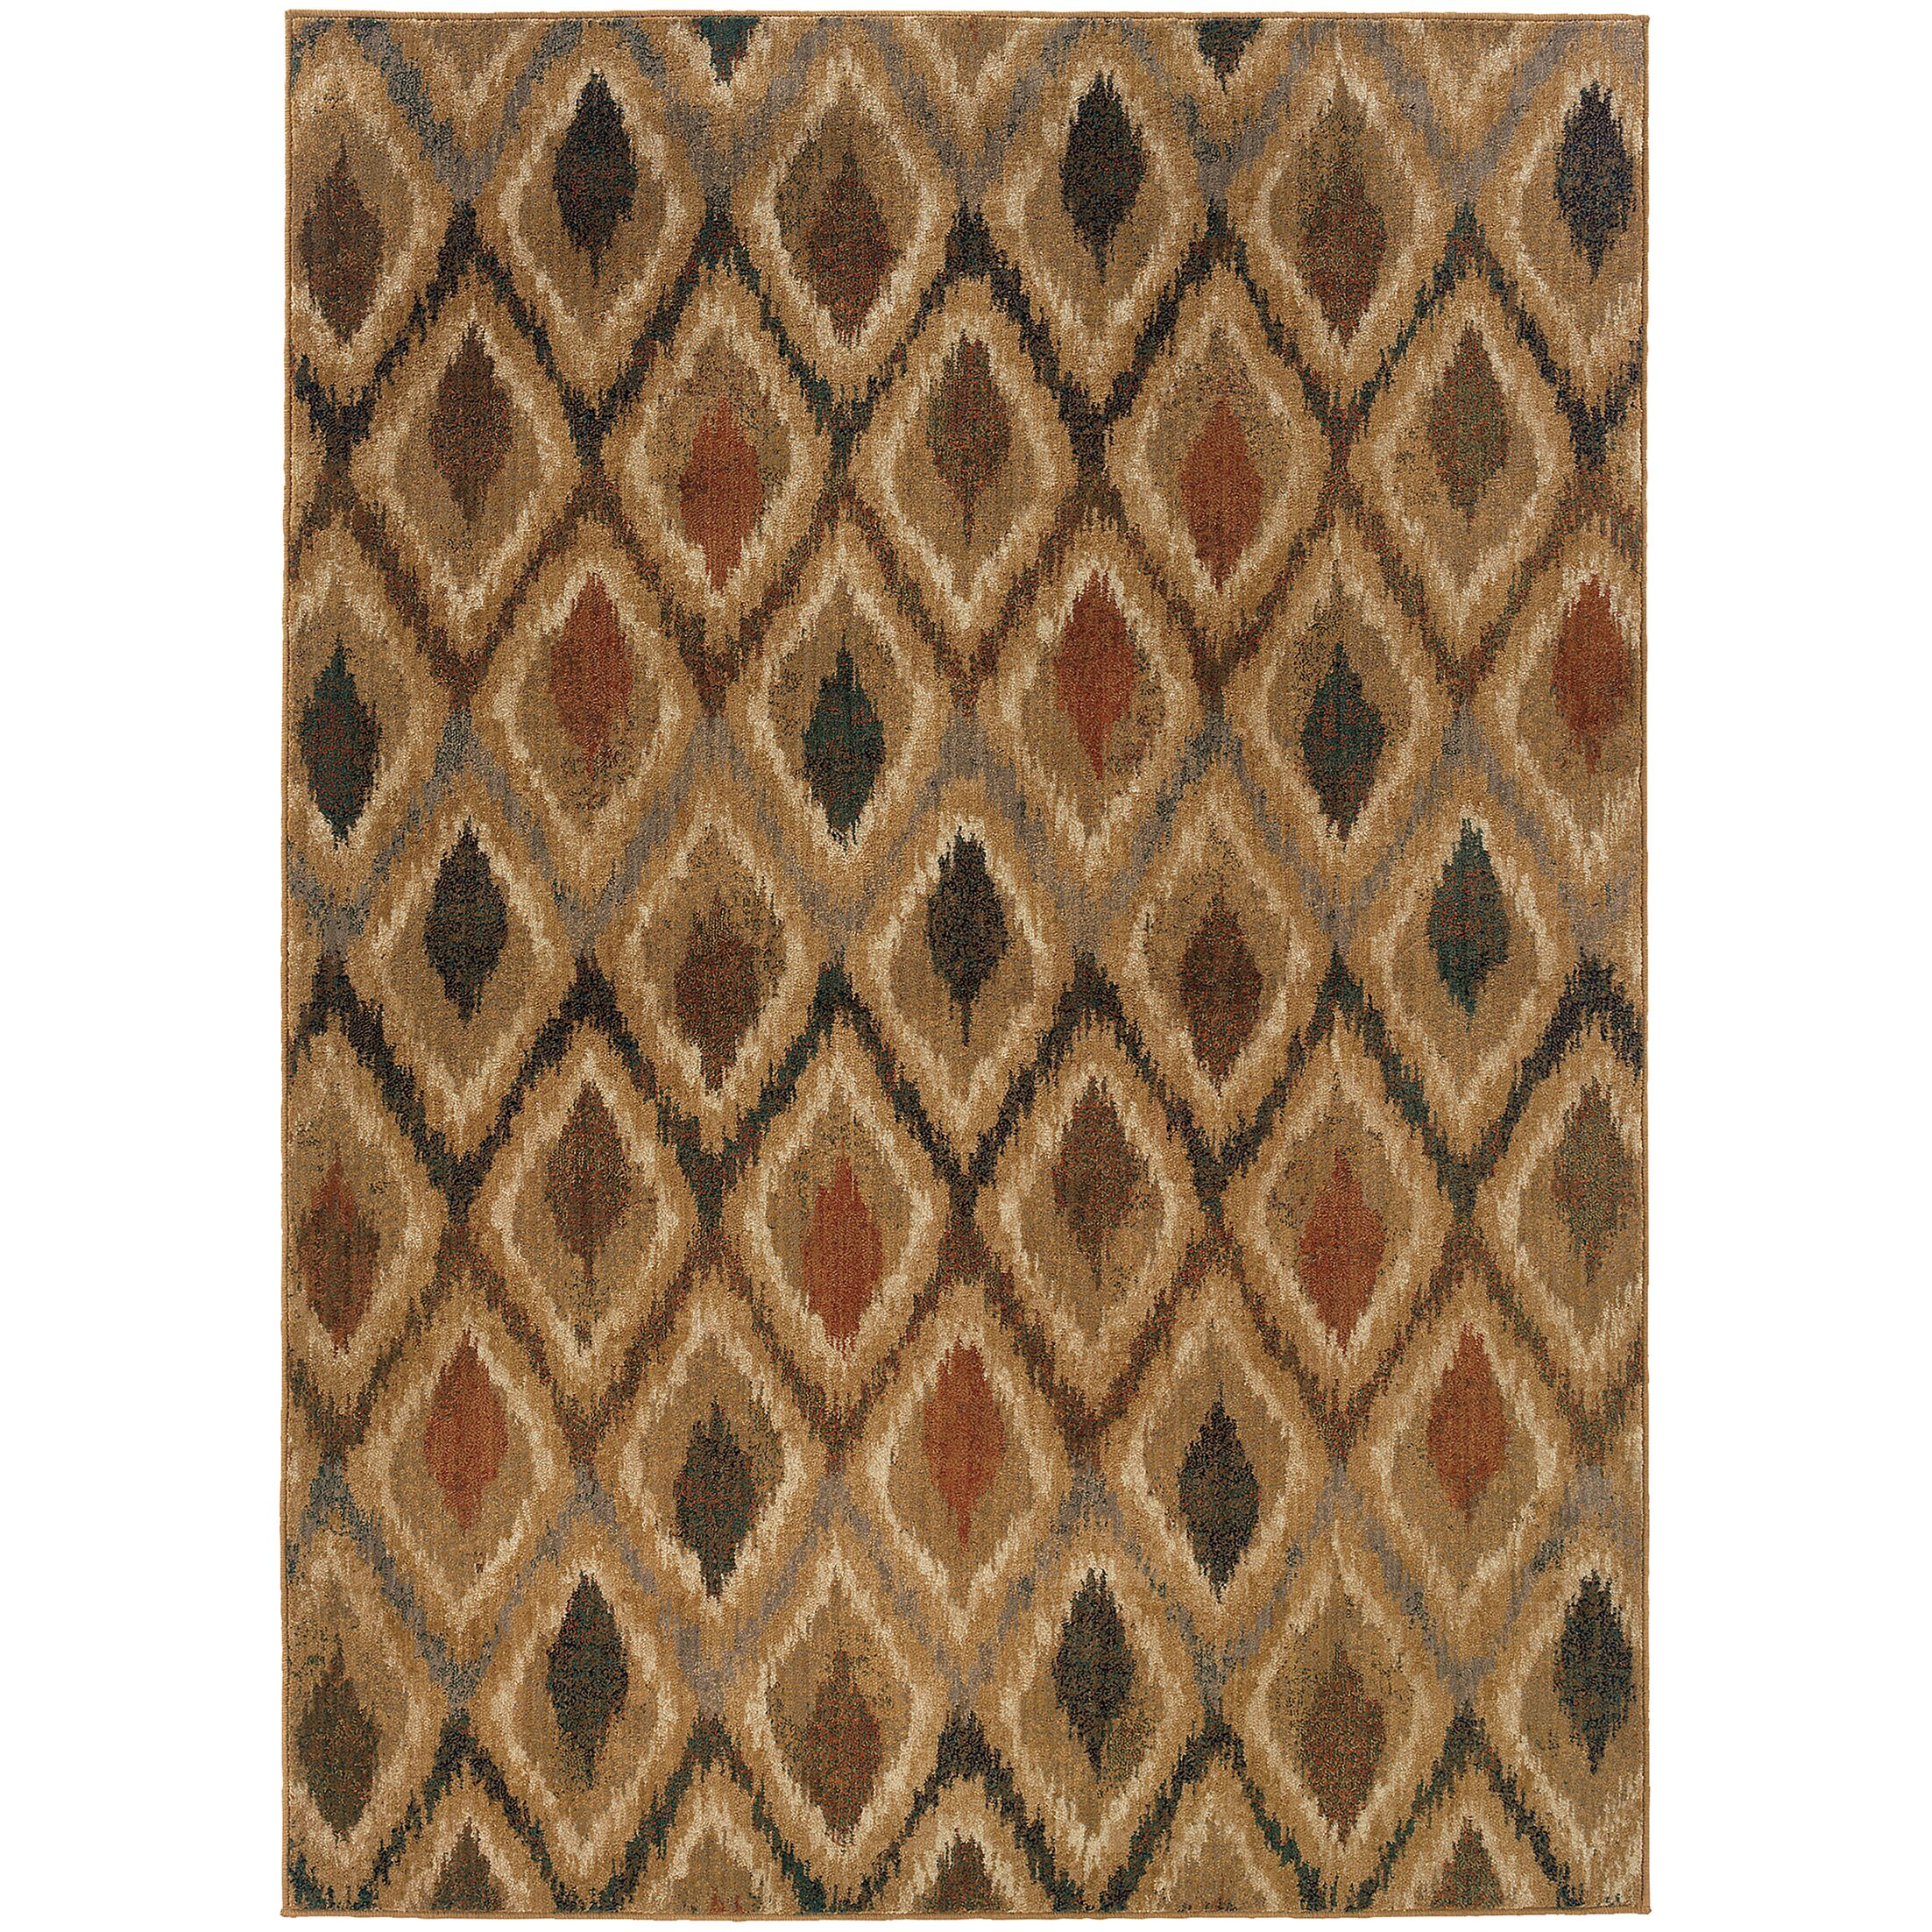 Johan Beige/Gray Area Rug Rug Size: Rectangle 5'3